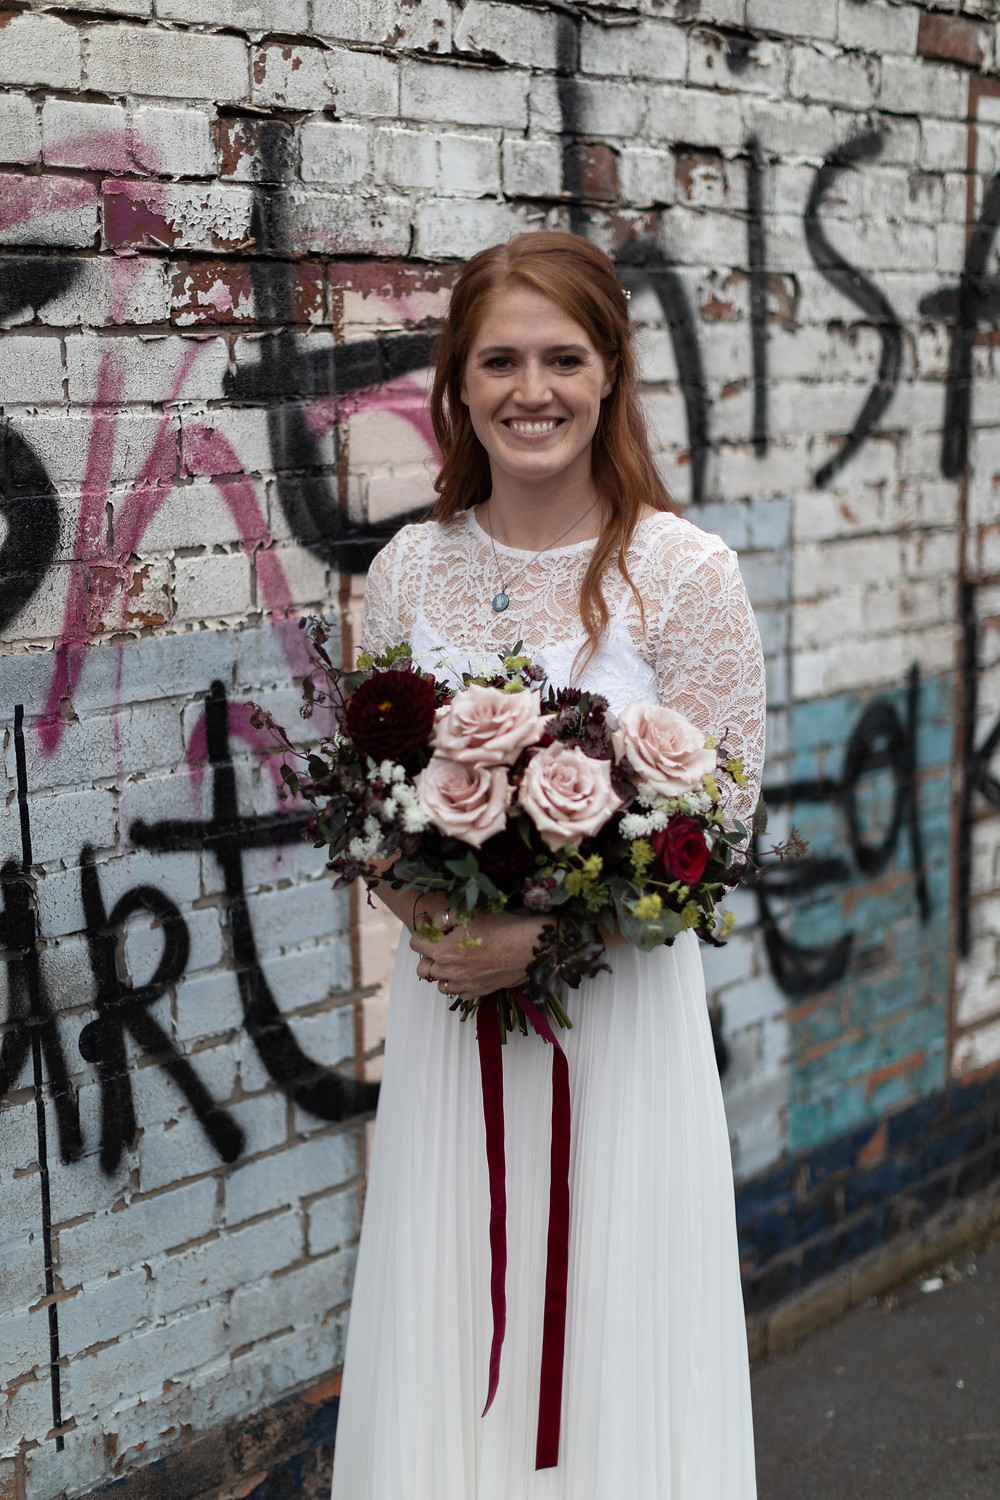 Urban portrait of the bride